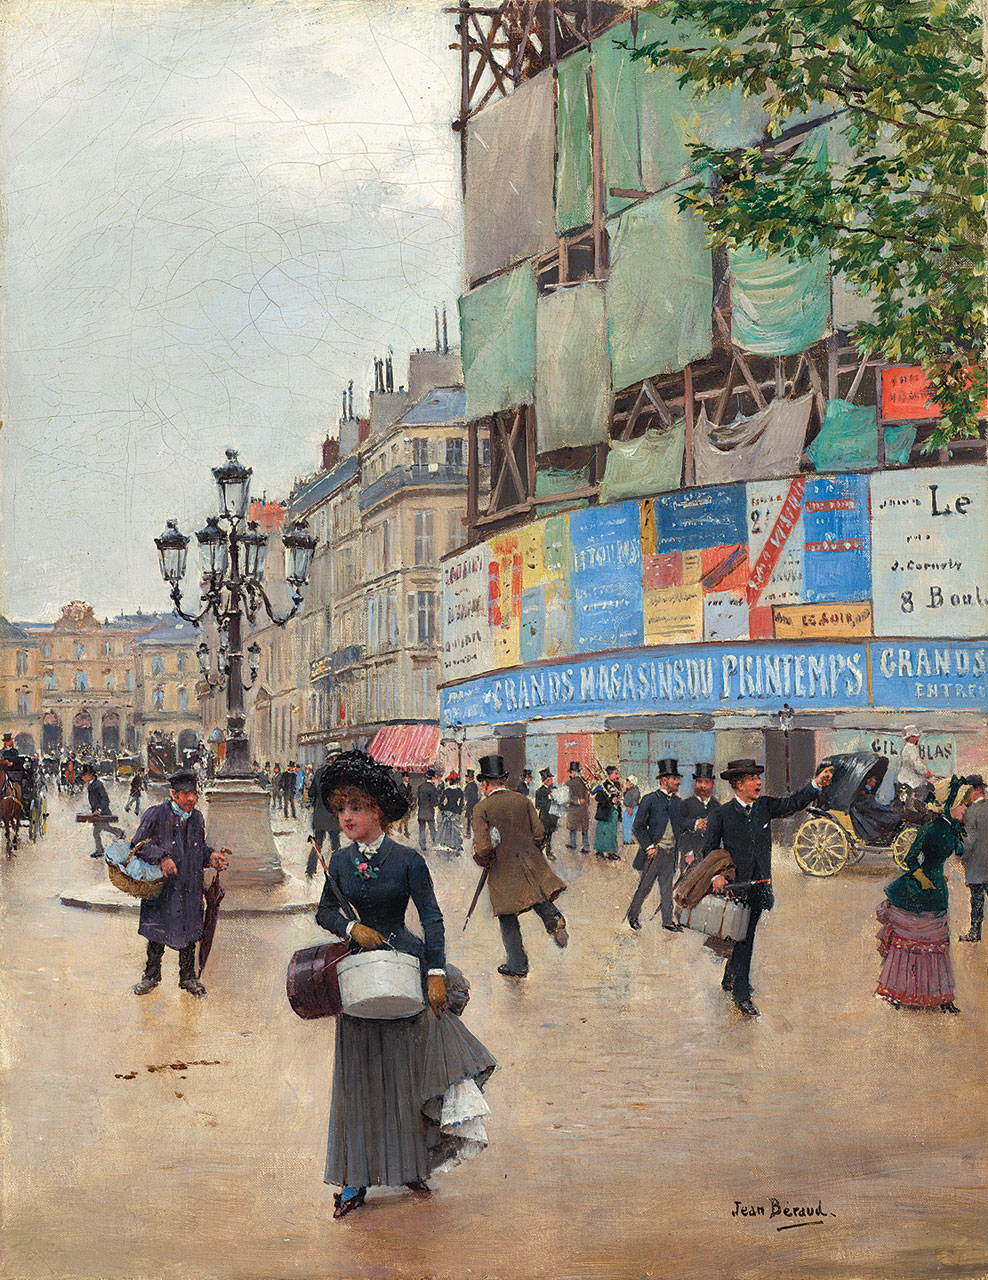 PARIS, RUE DU HAVRE by Jean Béraud, oil on canvas, 35.2 × 27.3 centimeters, 1882.  Courtesy of National Gallery of Art, Washington.